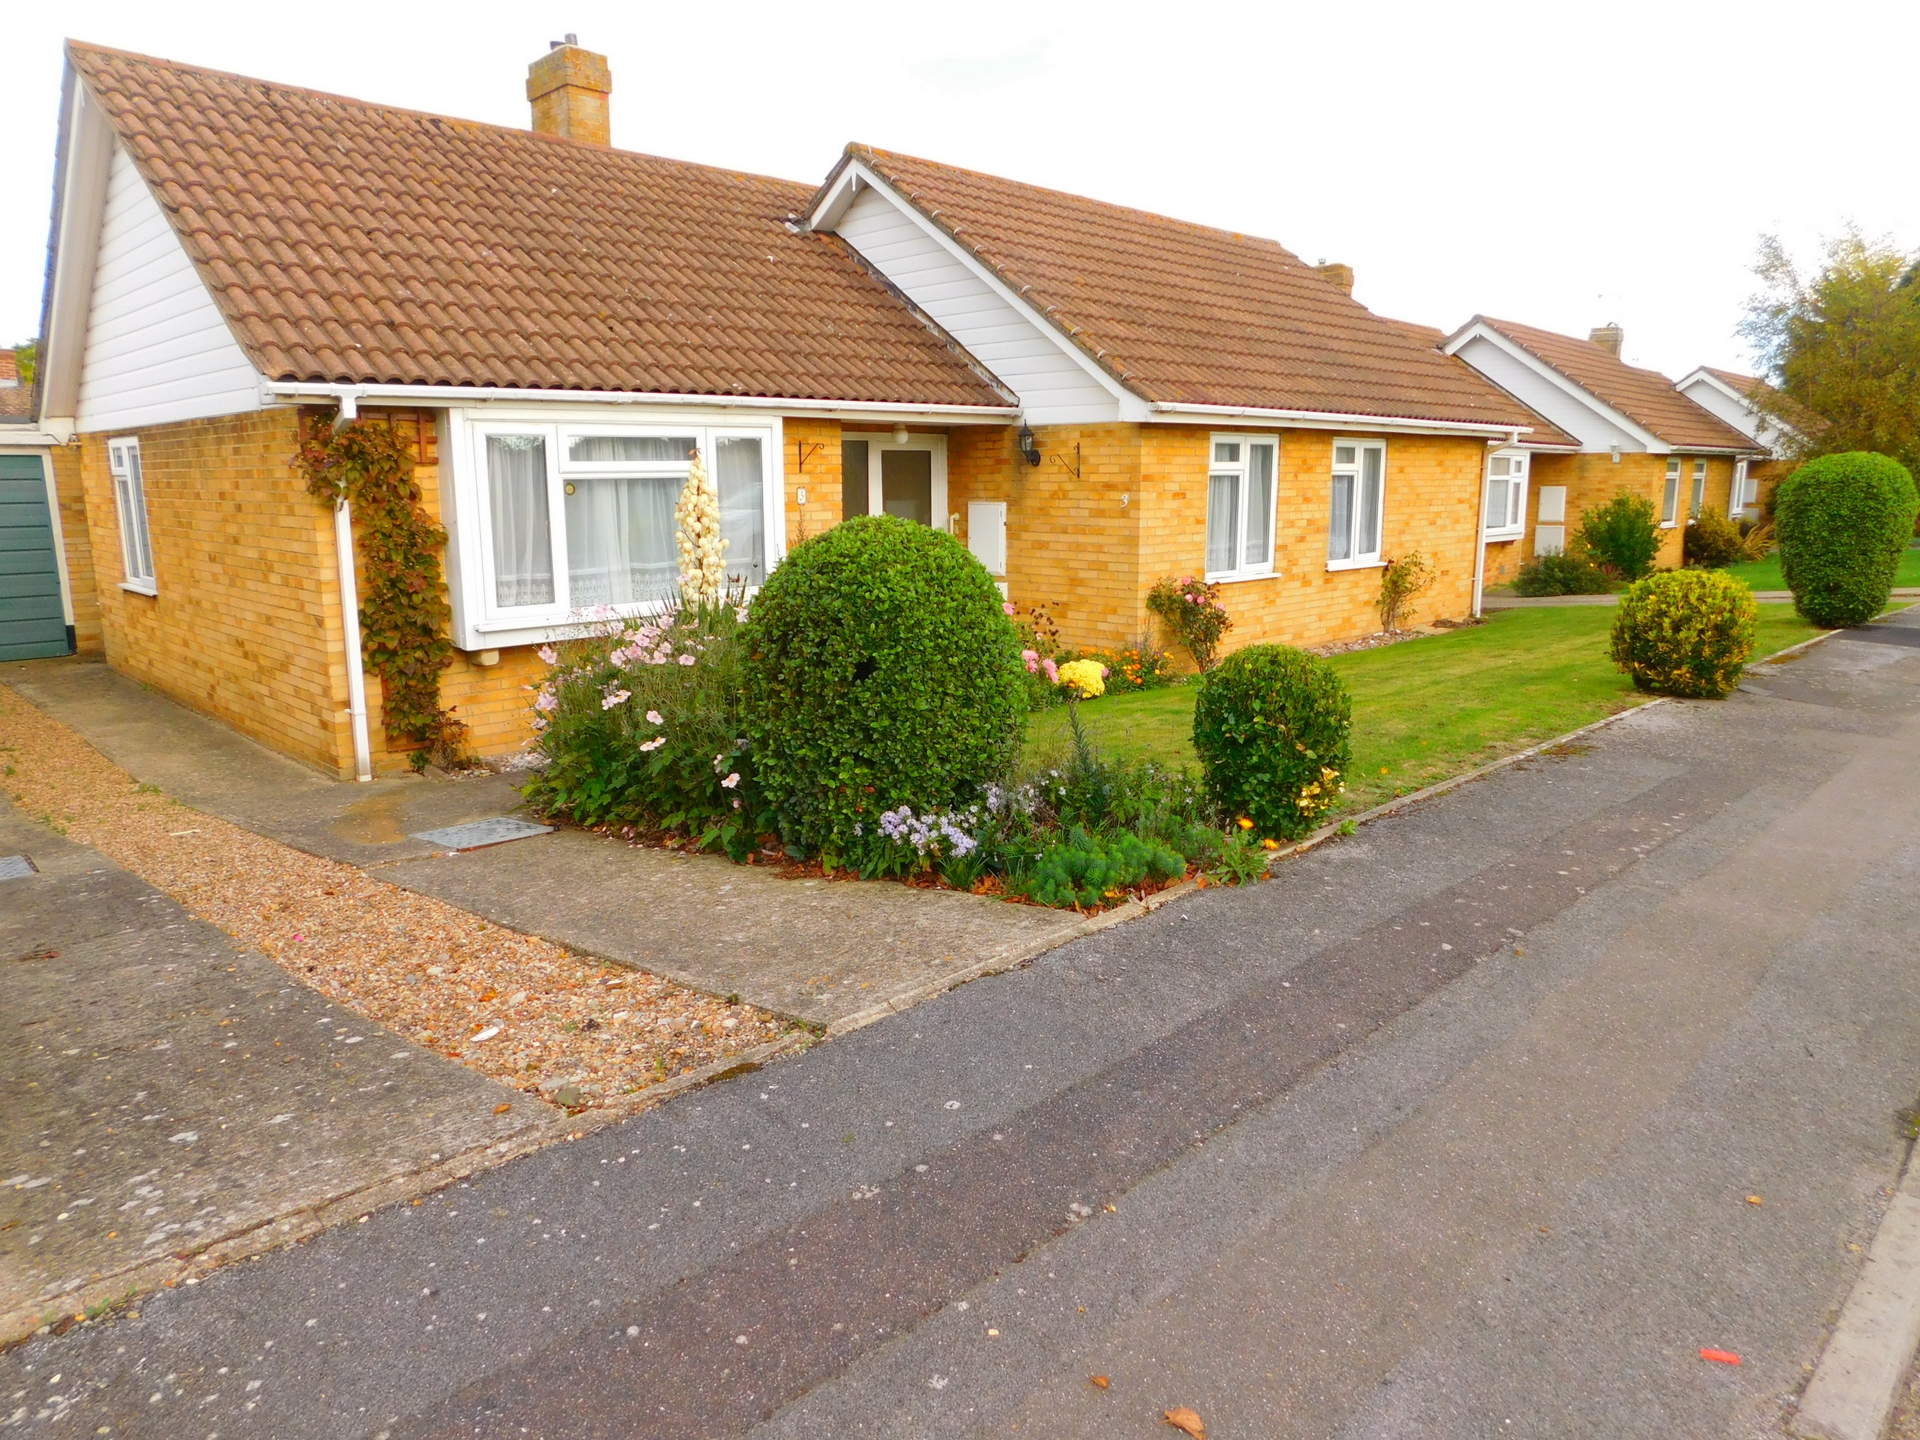 3 bed bungalow to rent in Cheesmans Close, Nr Ramsgate  - Property Image 1